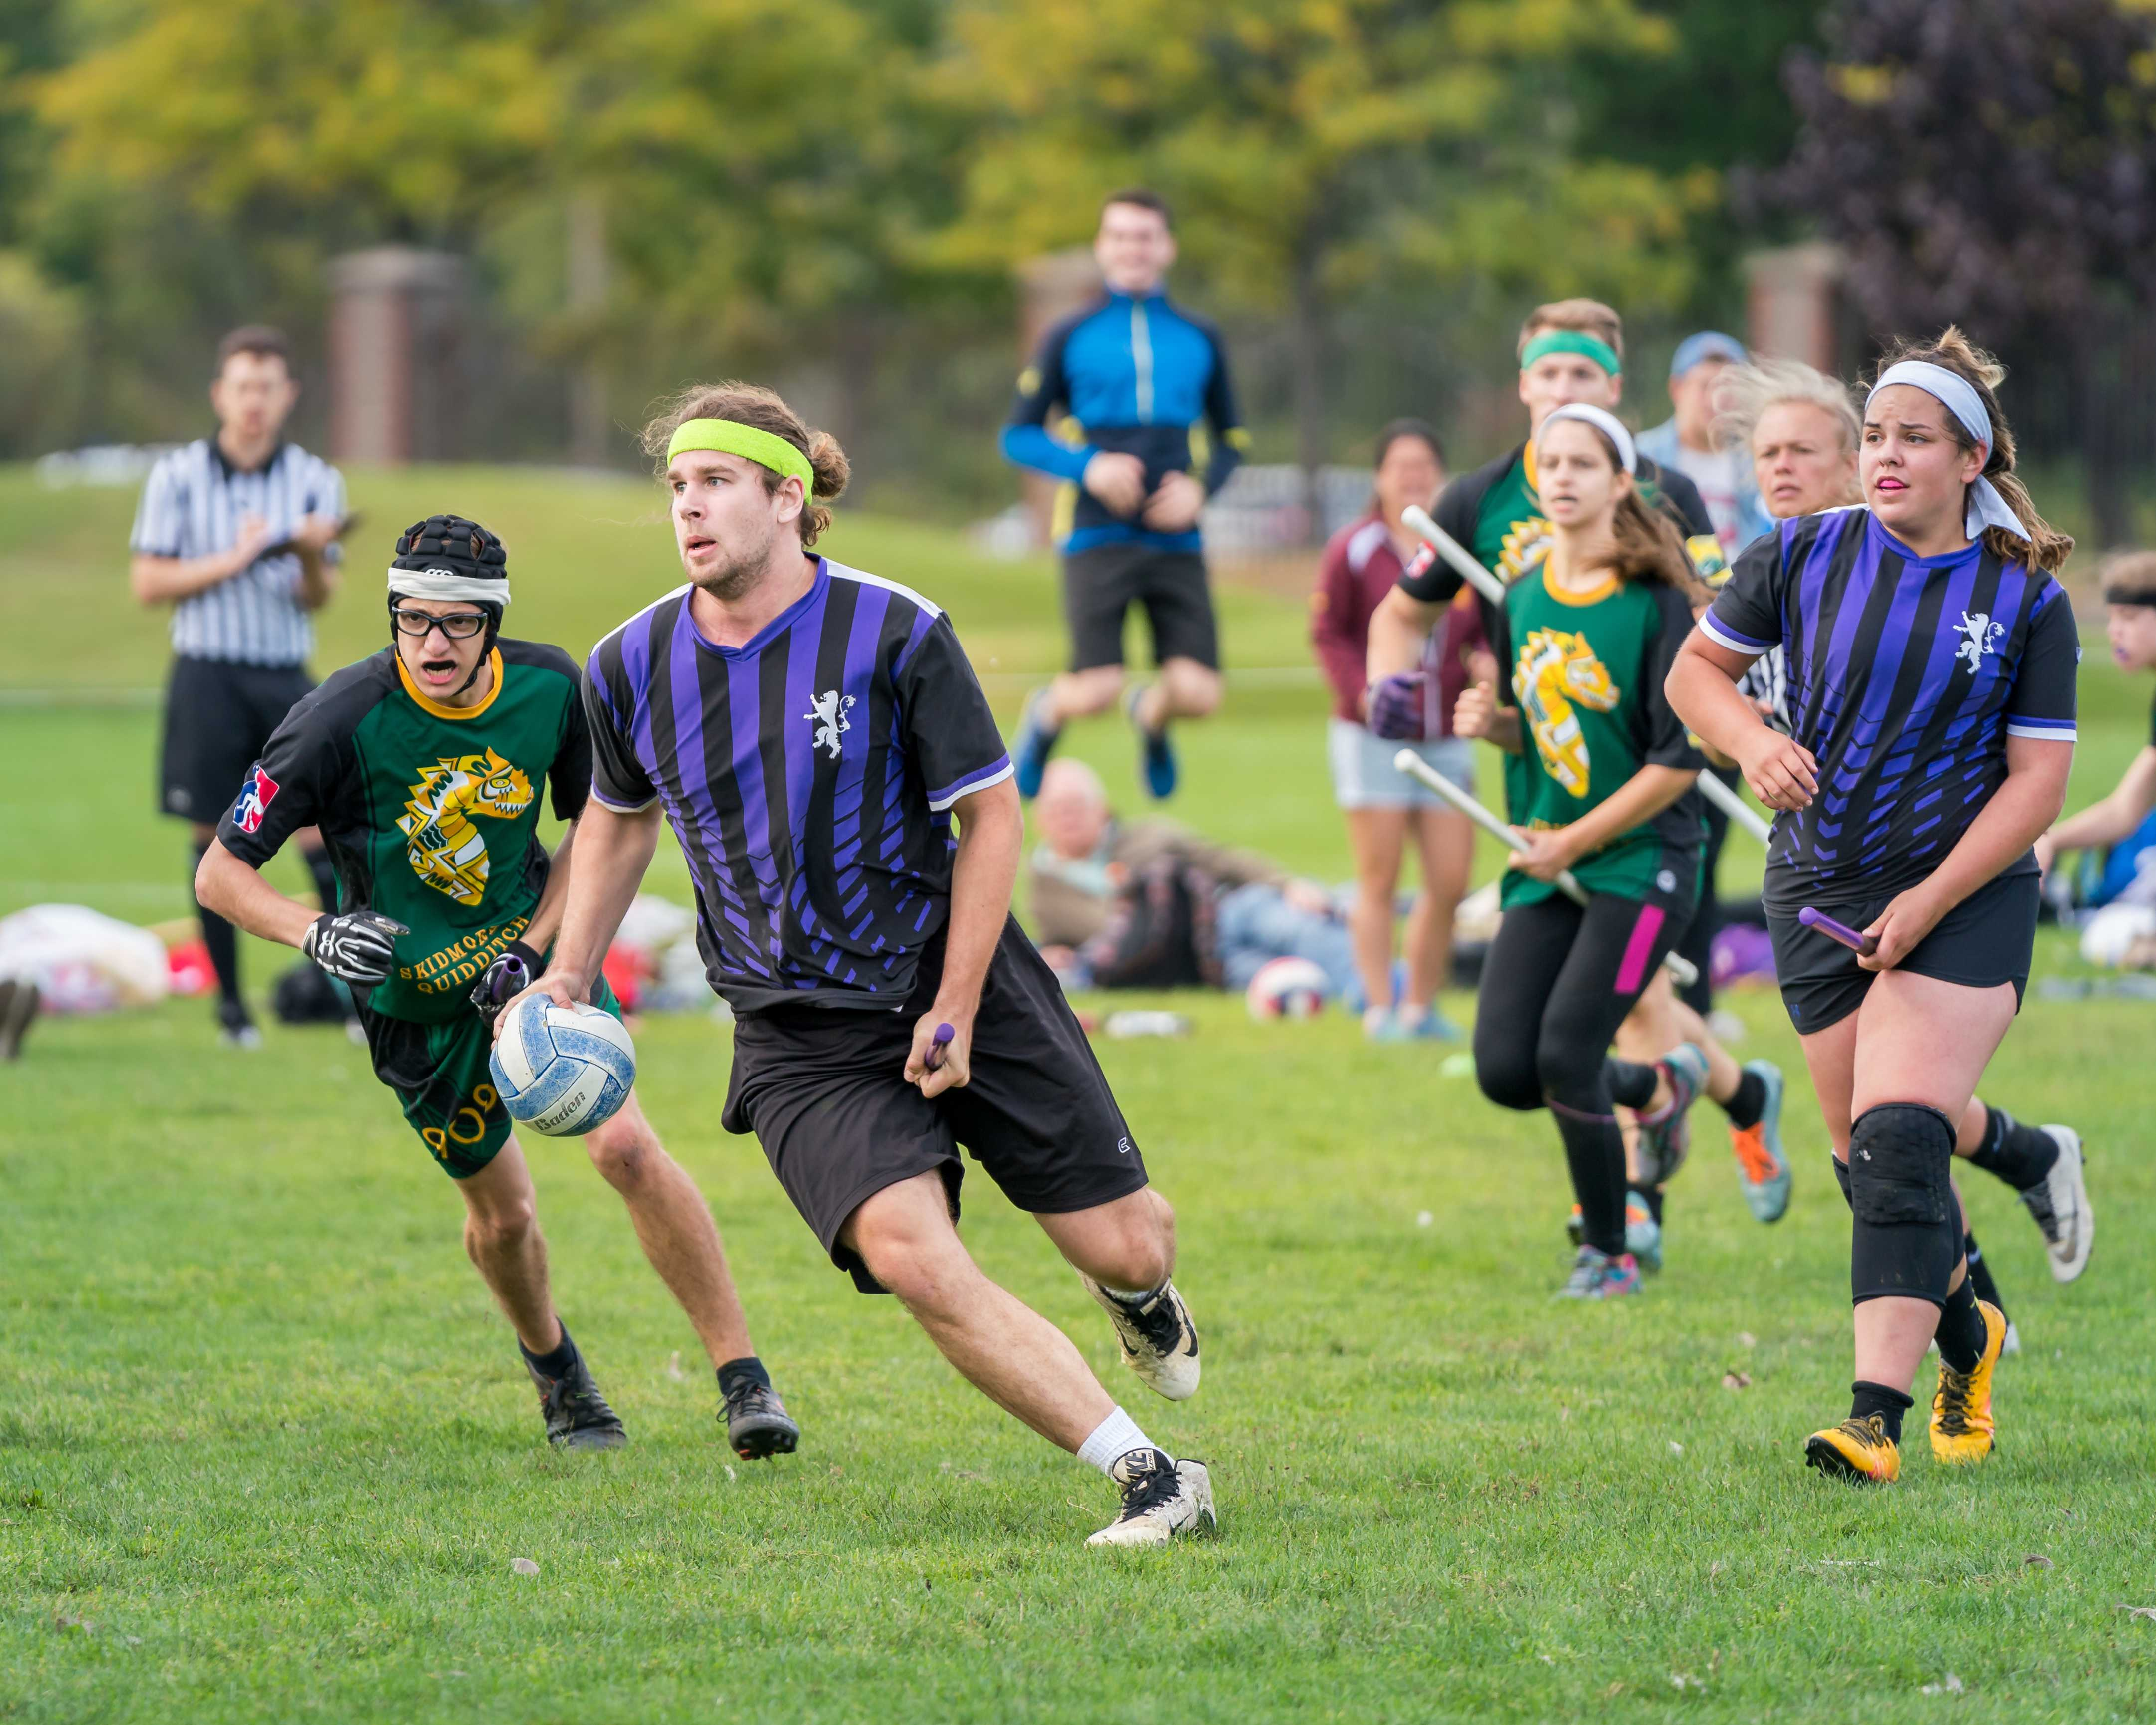 The Emerson College Quidditch team will play in the regional tournament this fall. Photo courtesy of Greyson Acquaviva.